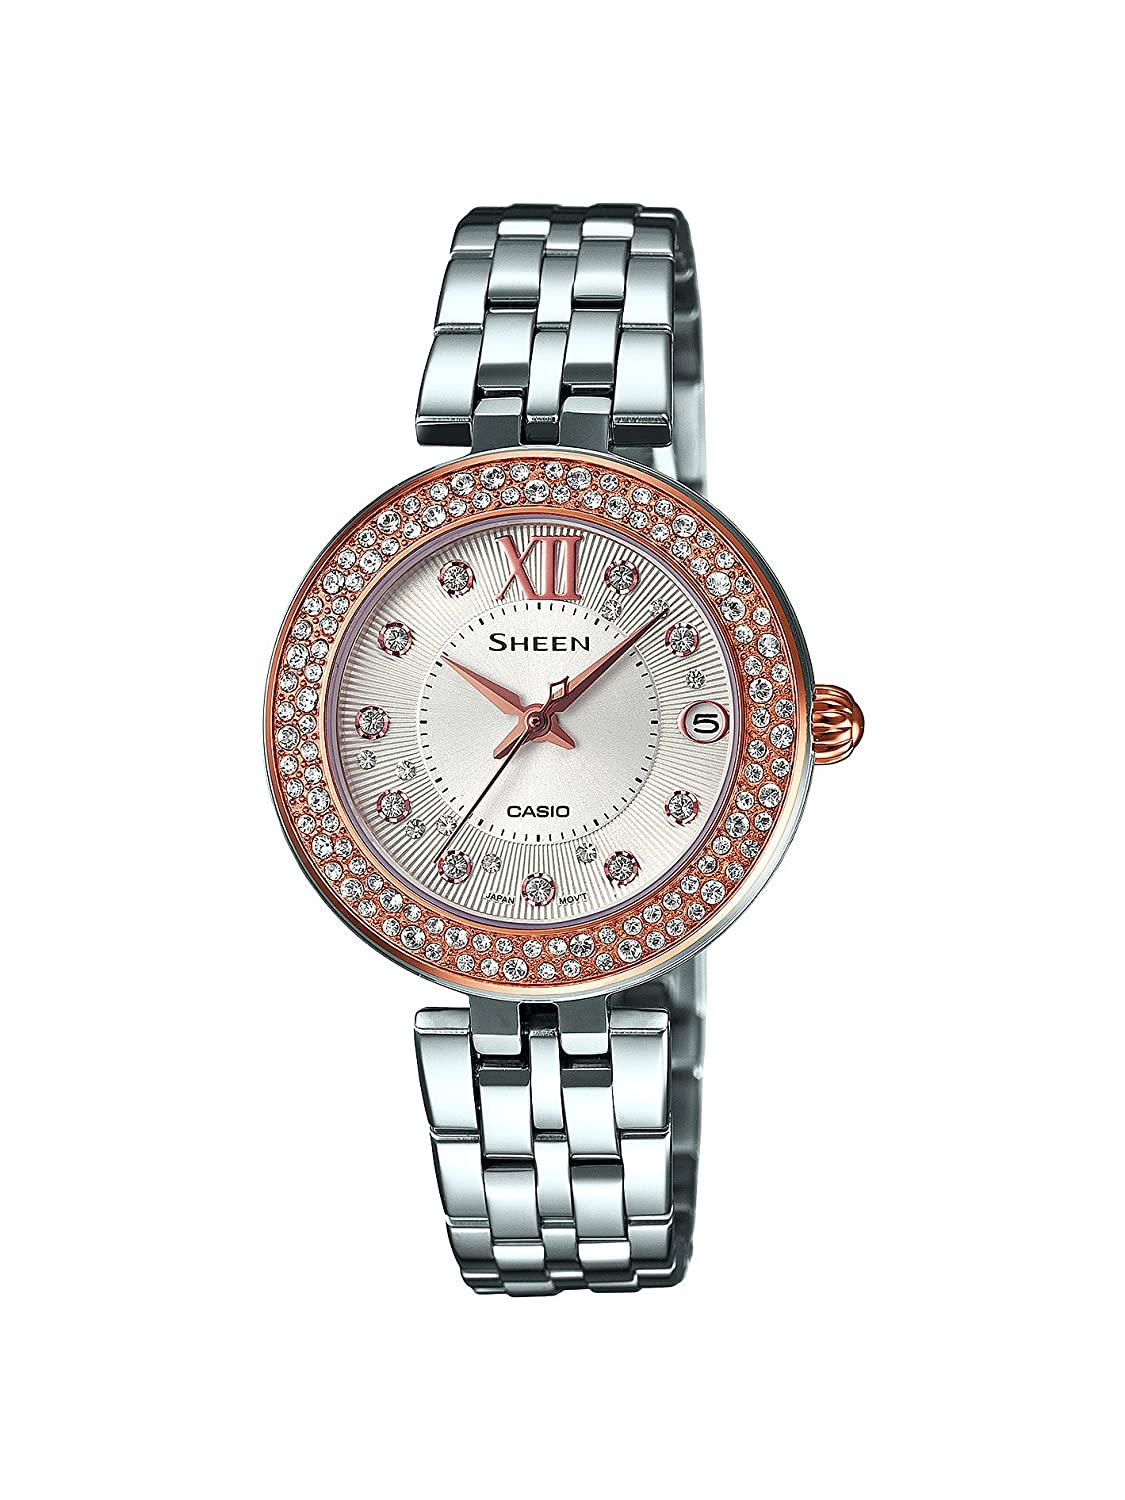 Casio Glanz she-4515d-7audr